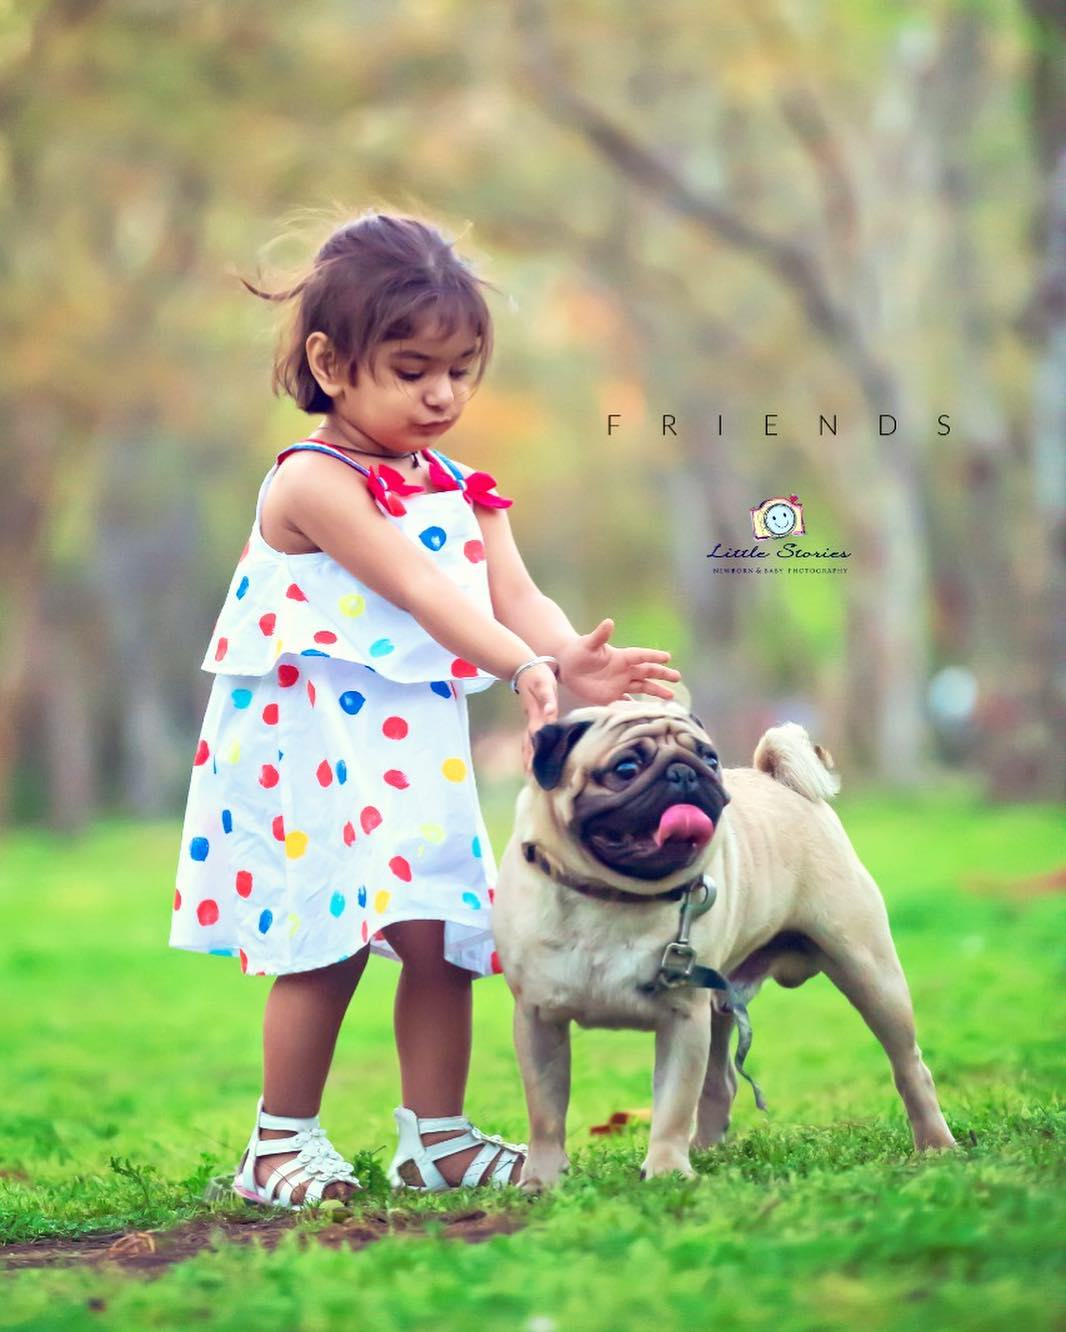 Let's be friends: Child photography poses ideas for memorable photoshoot